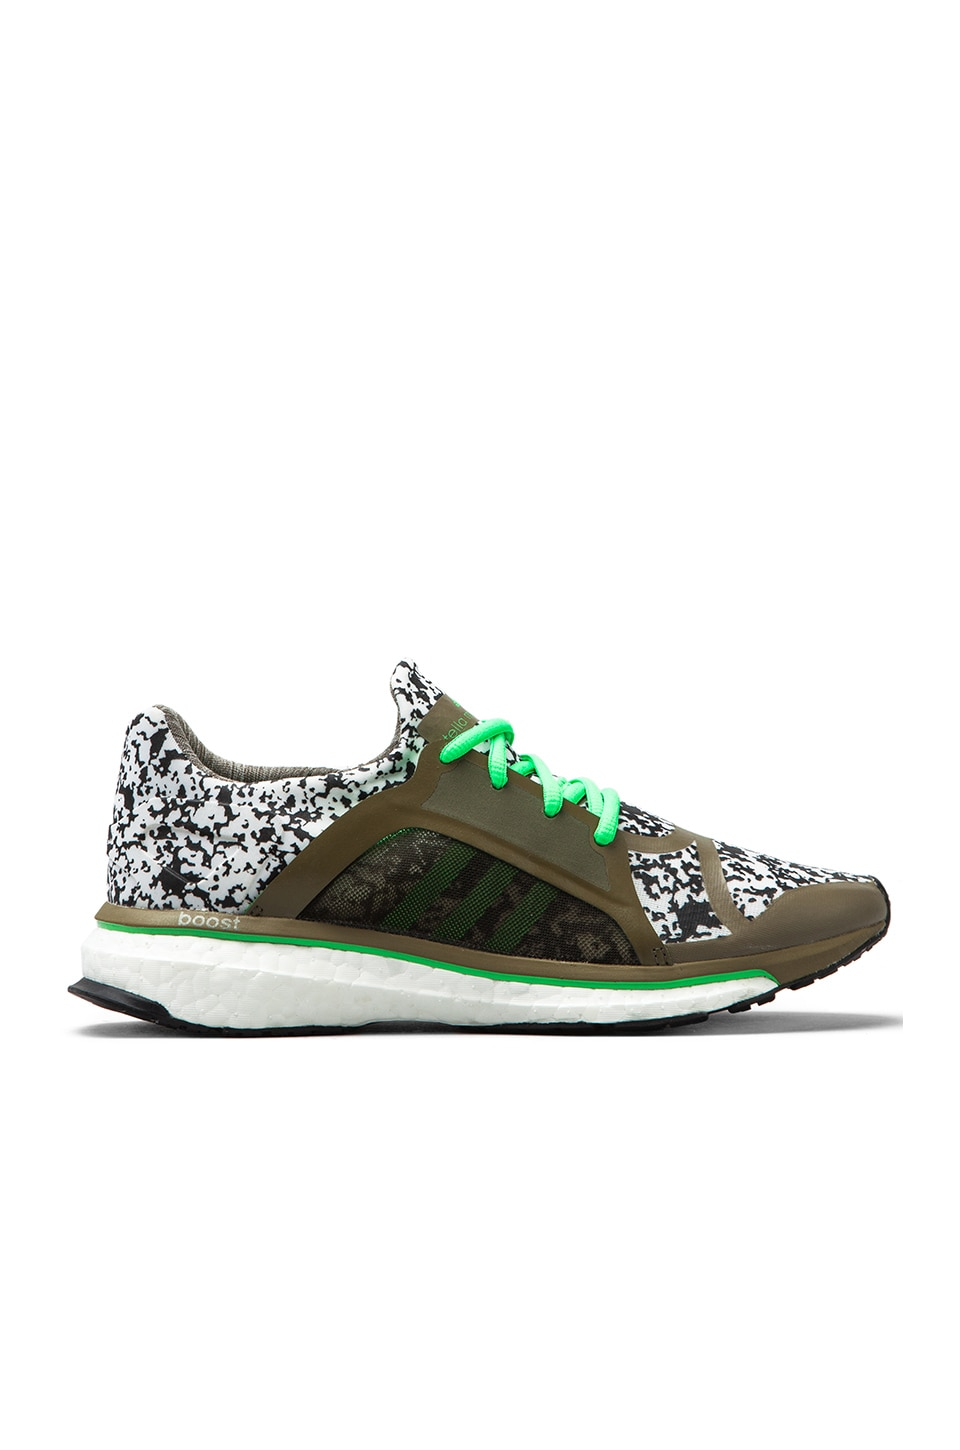 adidas by Stella McCartney Trochilus Boost Sneaker en Lizard/Green Zest/Running White